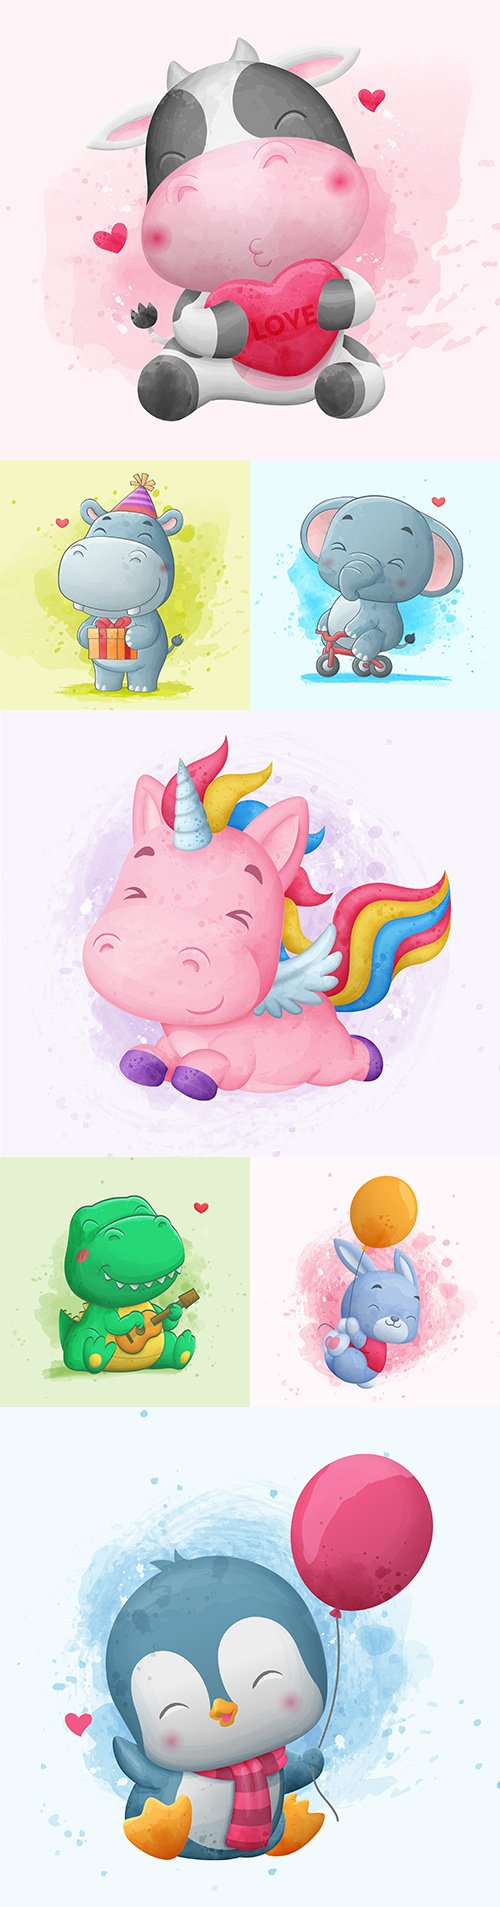 Watercolor illustrations cute cartoon animals with balloons